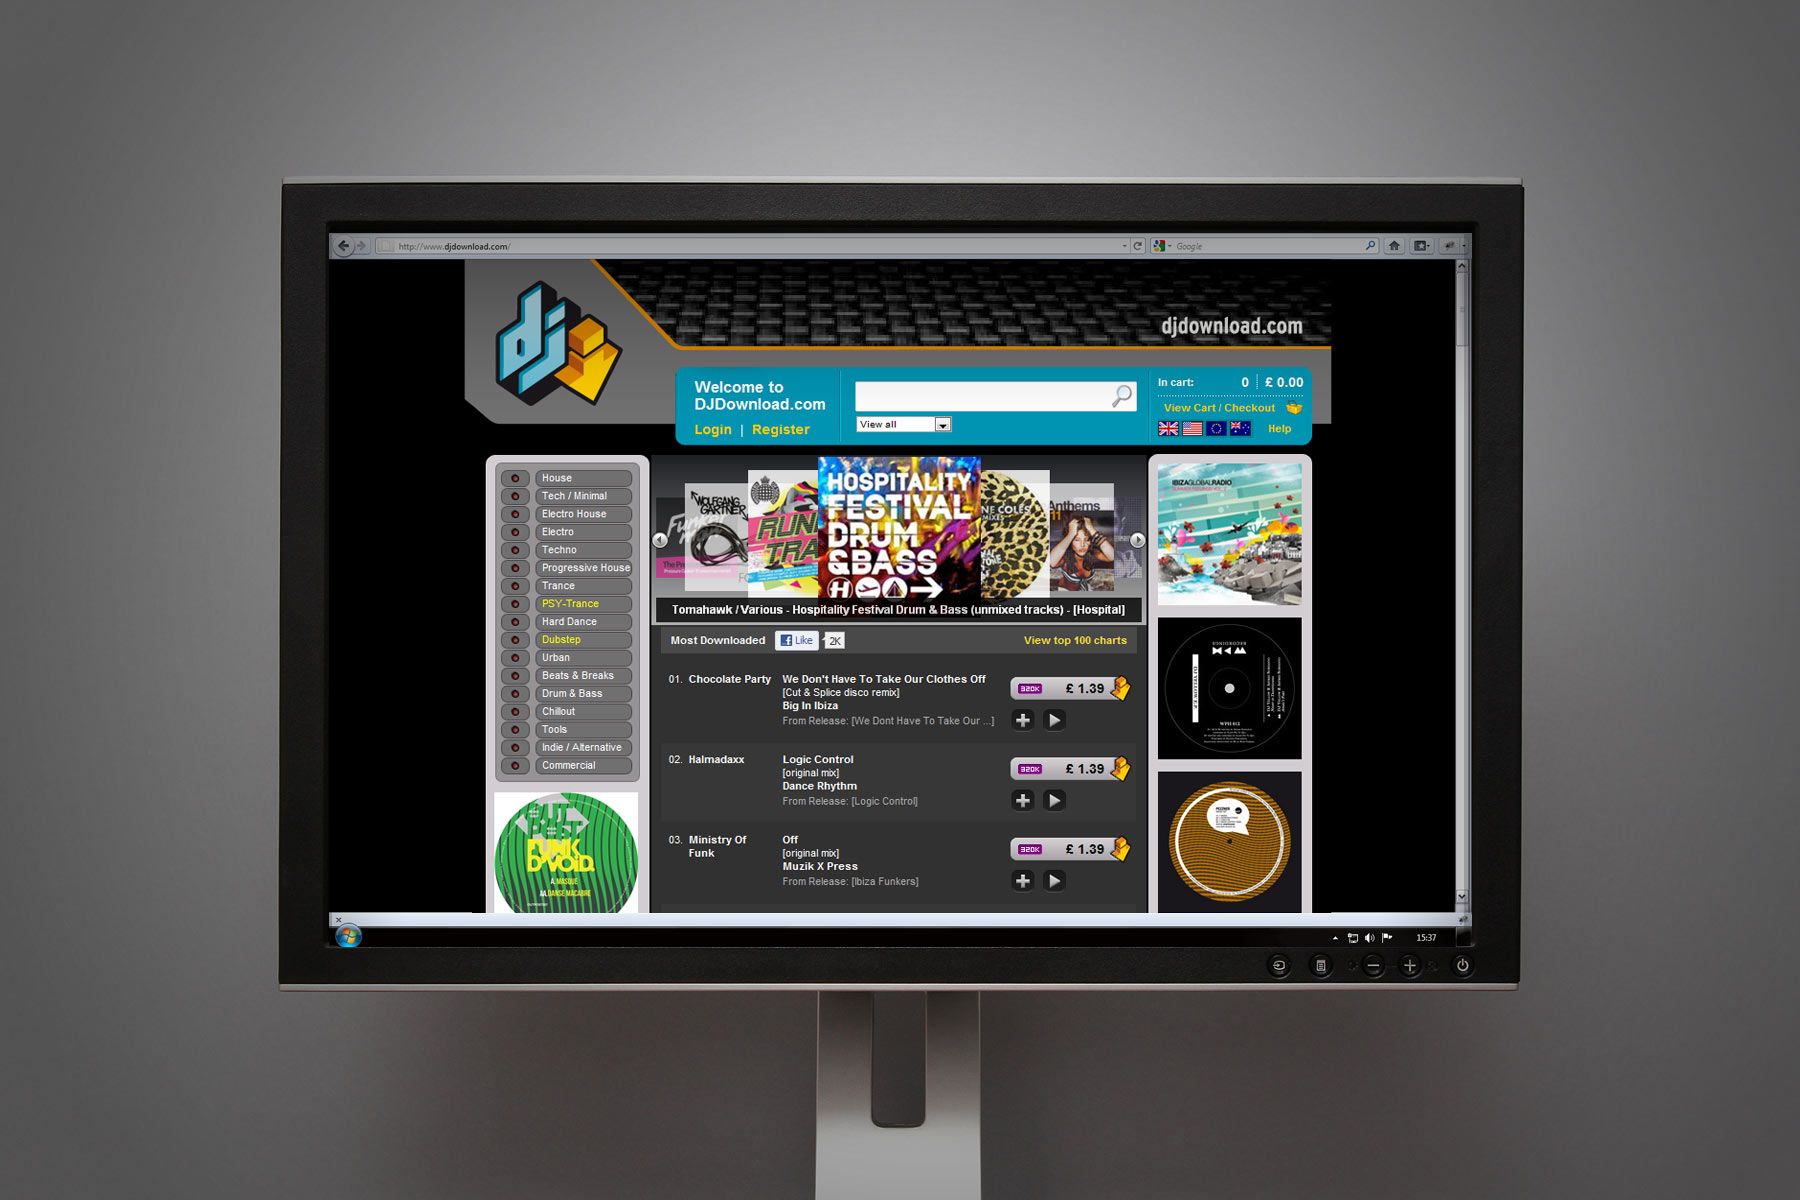 We worked together with the DJDownload team, assisting them on creating a unique online environment, inspired by rack mounted musical kit.